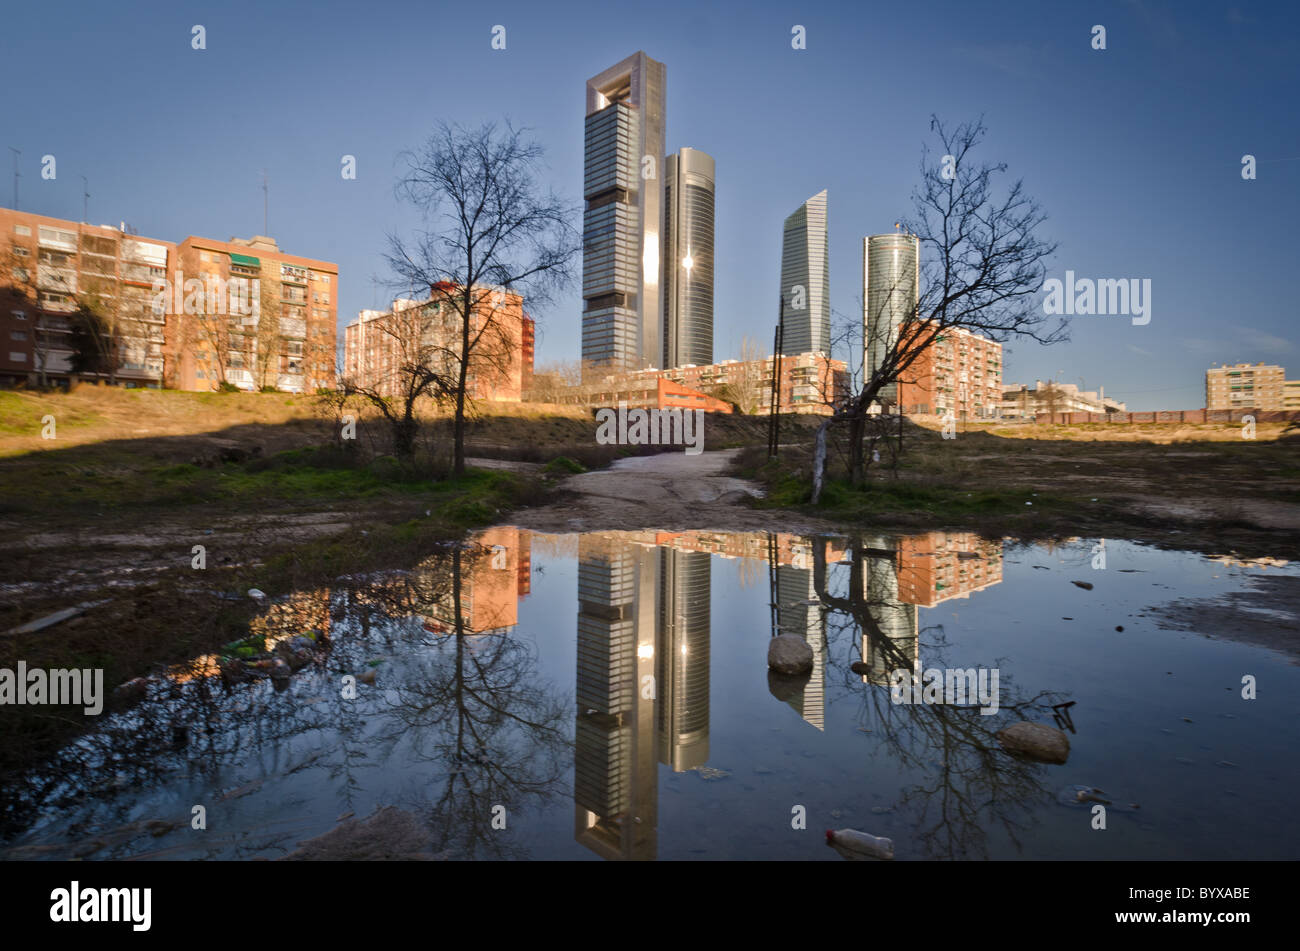 Cuatro Torres Business Area (CTBA) (Spanish for Four Towers Business Area) next to poor housing and wasteland - Stock Image